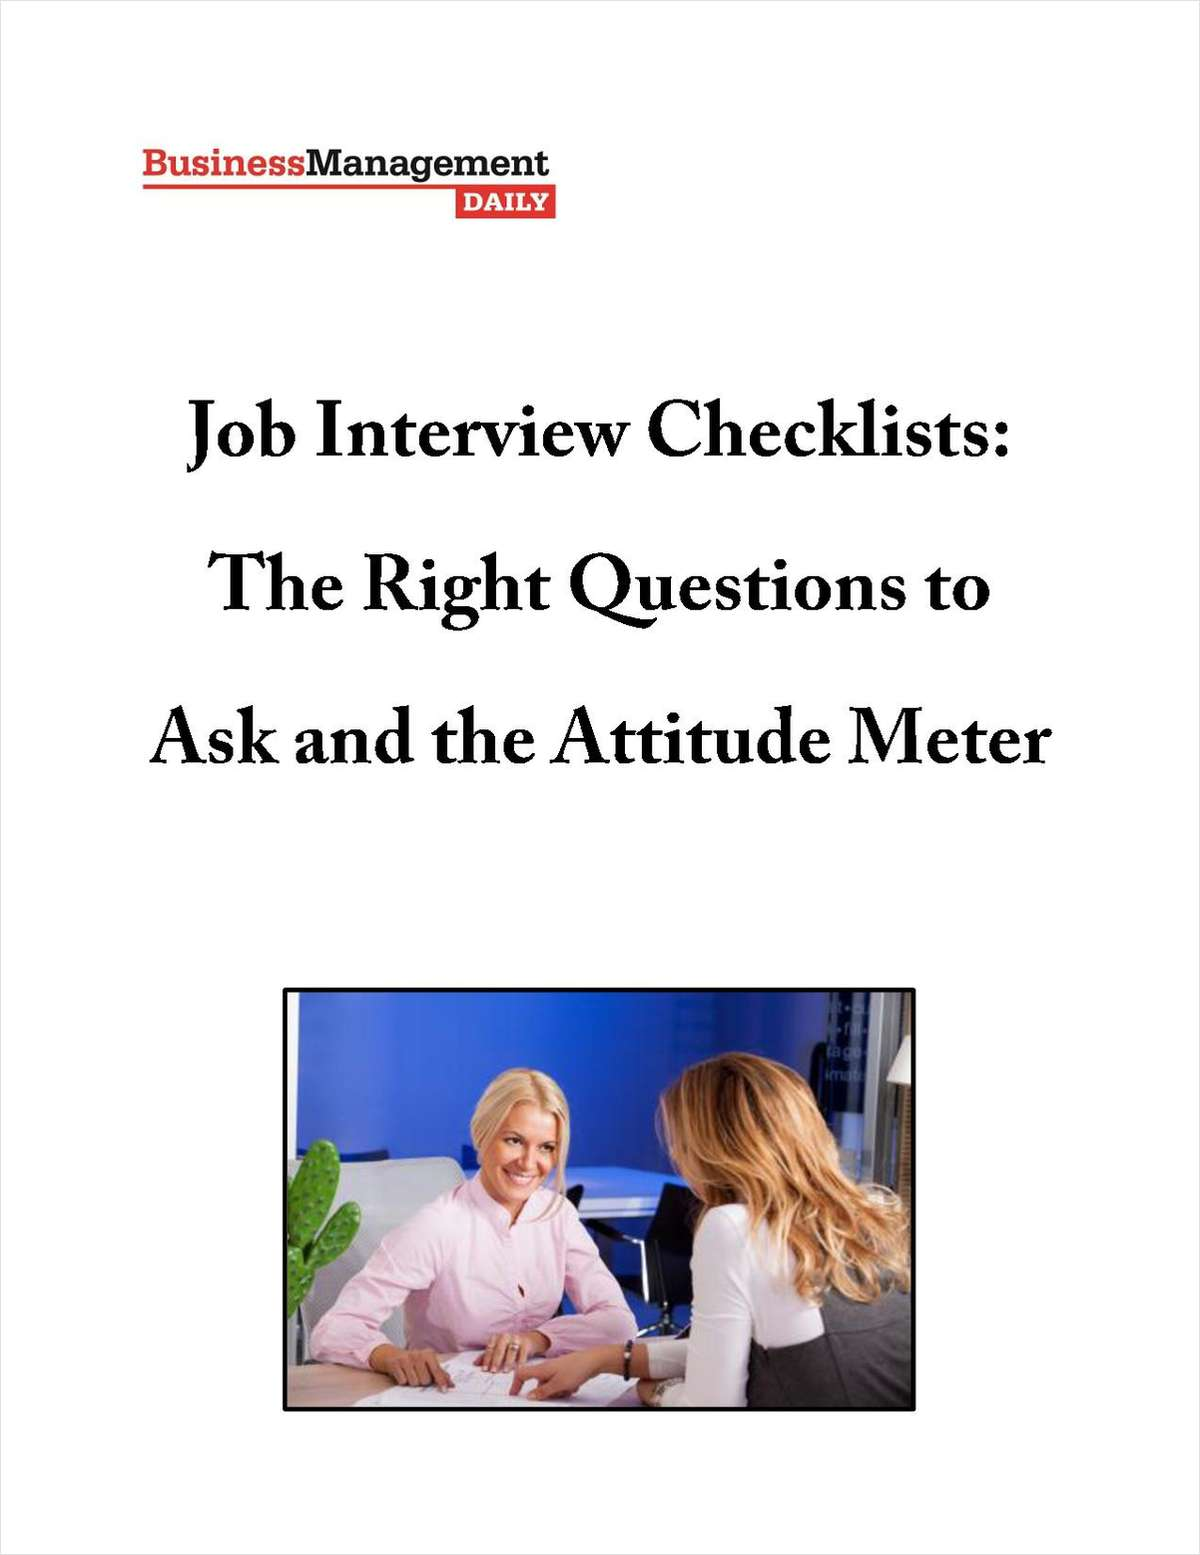 Job Interview Checklists: The Right Questions to Ask and the Attitude Meter